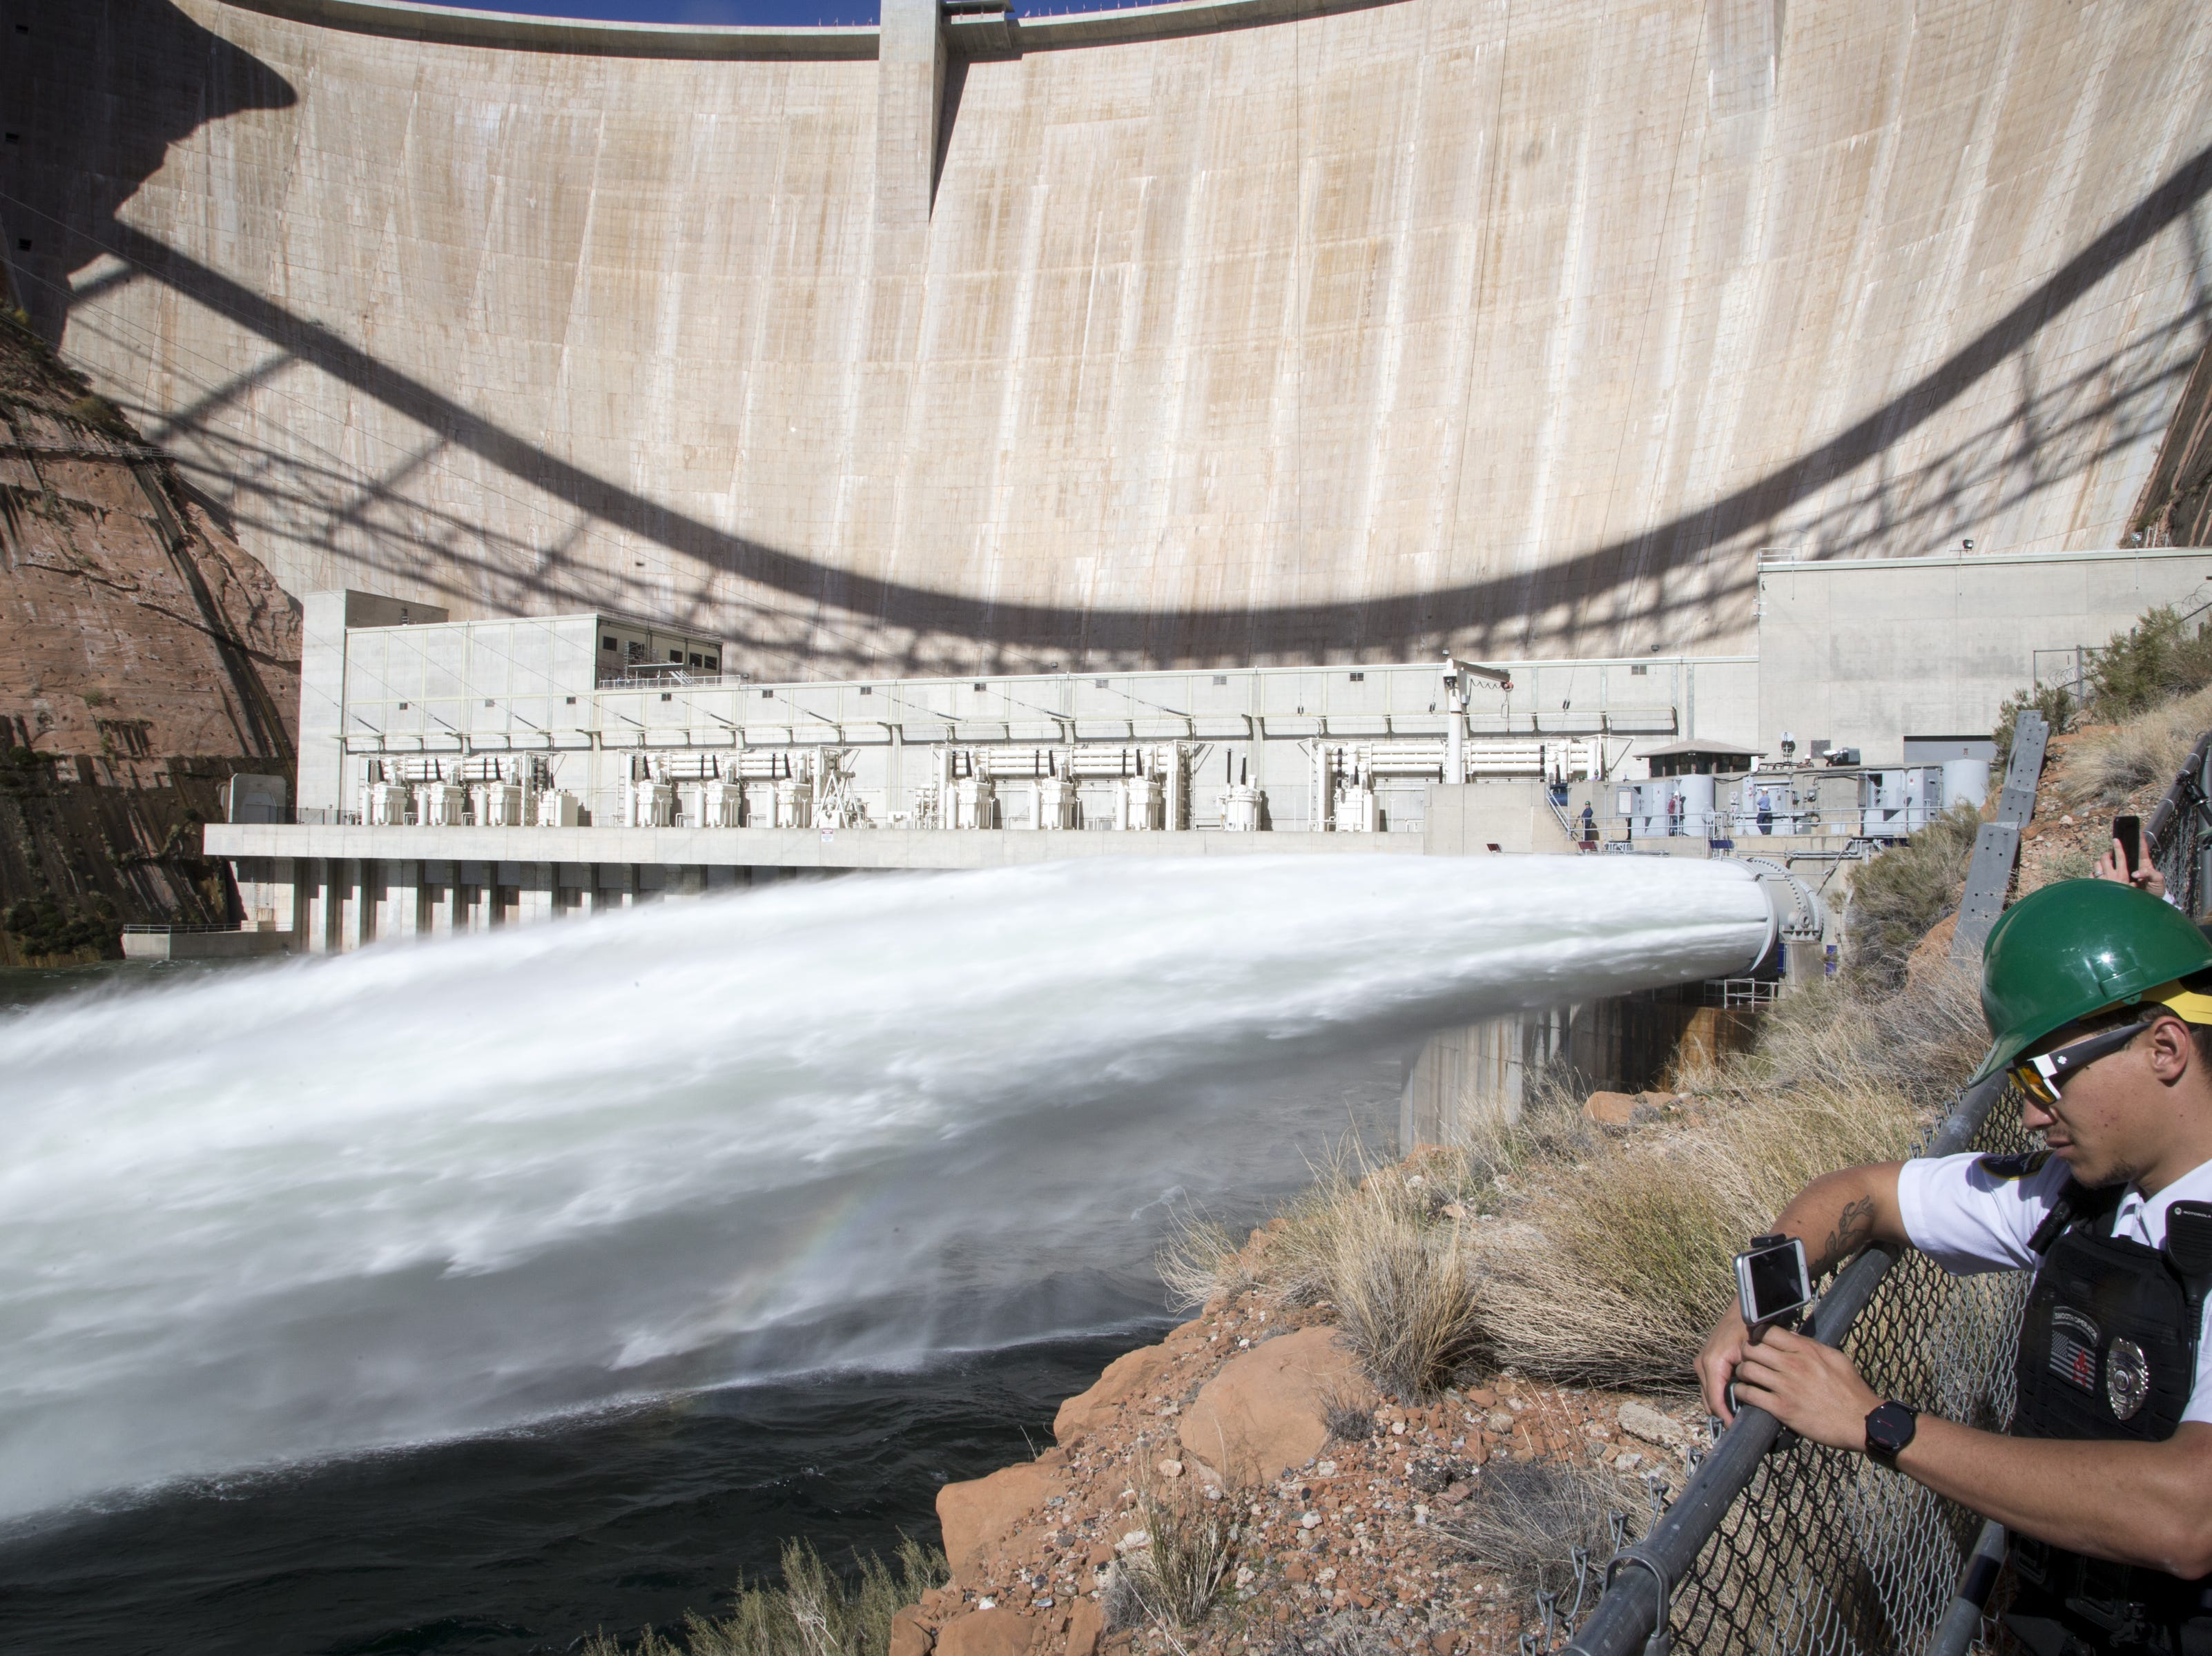 Skyler Emmons takes a video of water being released from Glen Canyon Dam through a bypass tube on Nov. 5, 2018, during a high-flow experiment.